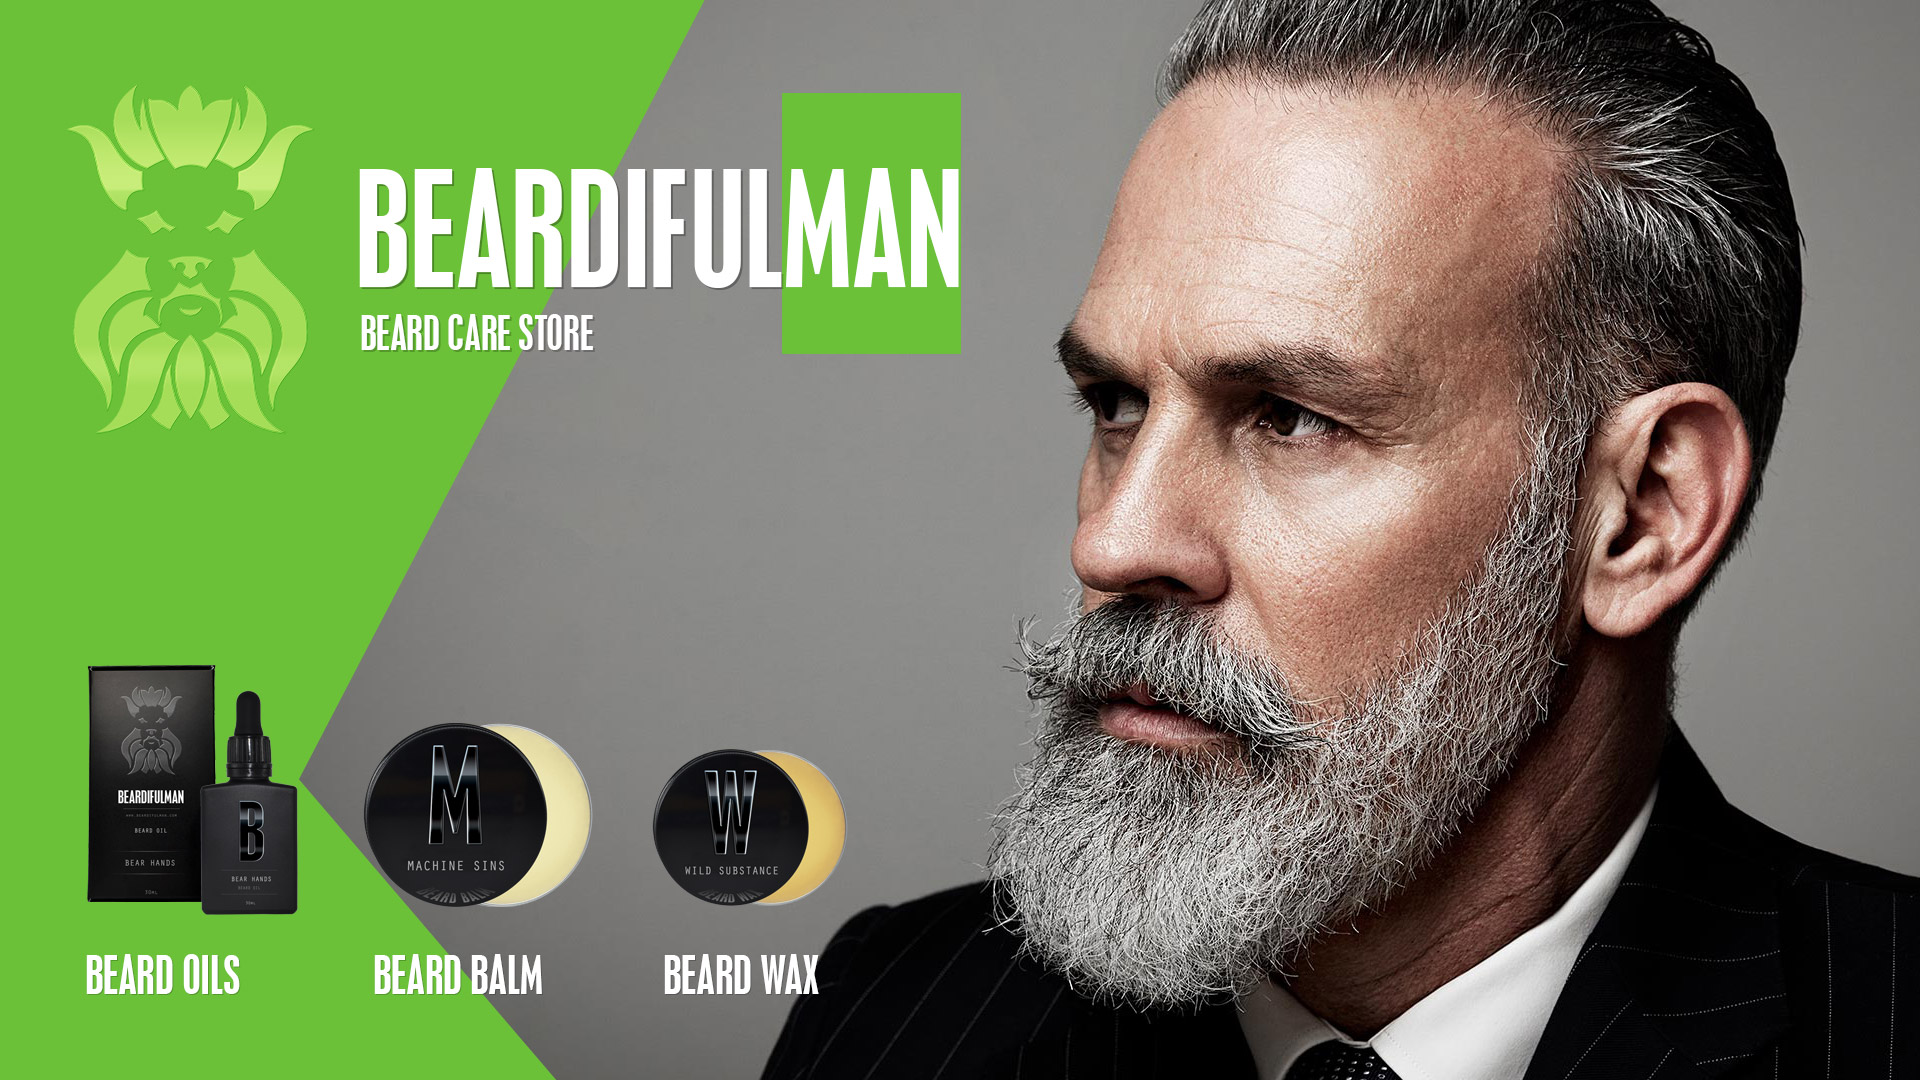 Beardifulman in the wildIf you like our Beardifulman beard care products and would like to review our products, interview the founders or generally just link to us because you are awesome, please